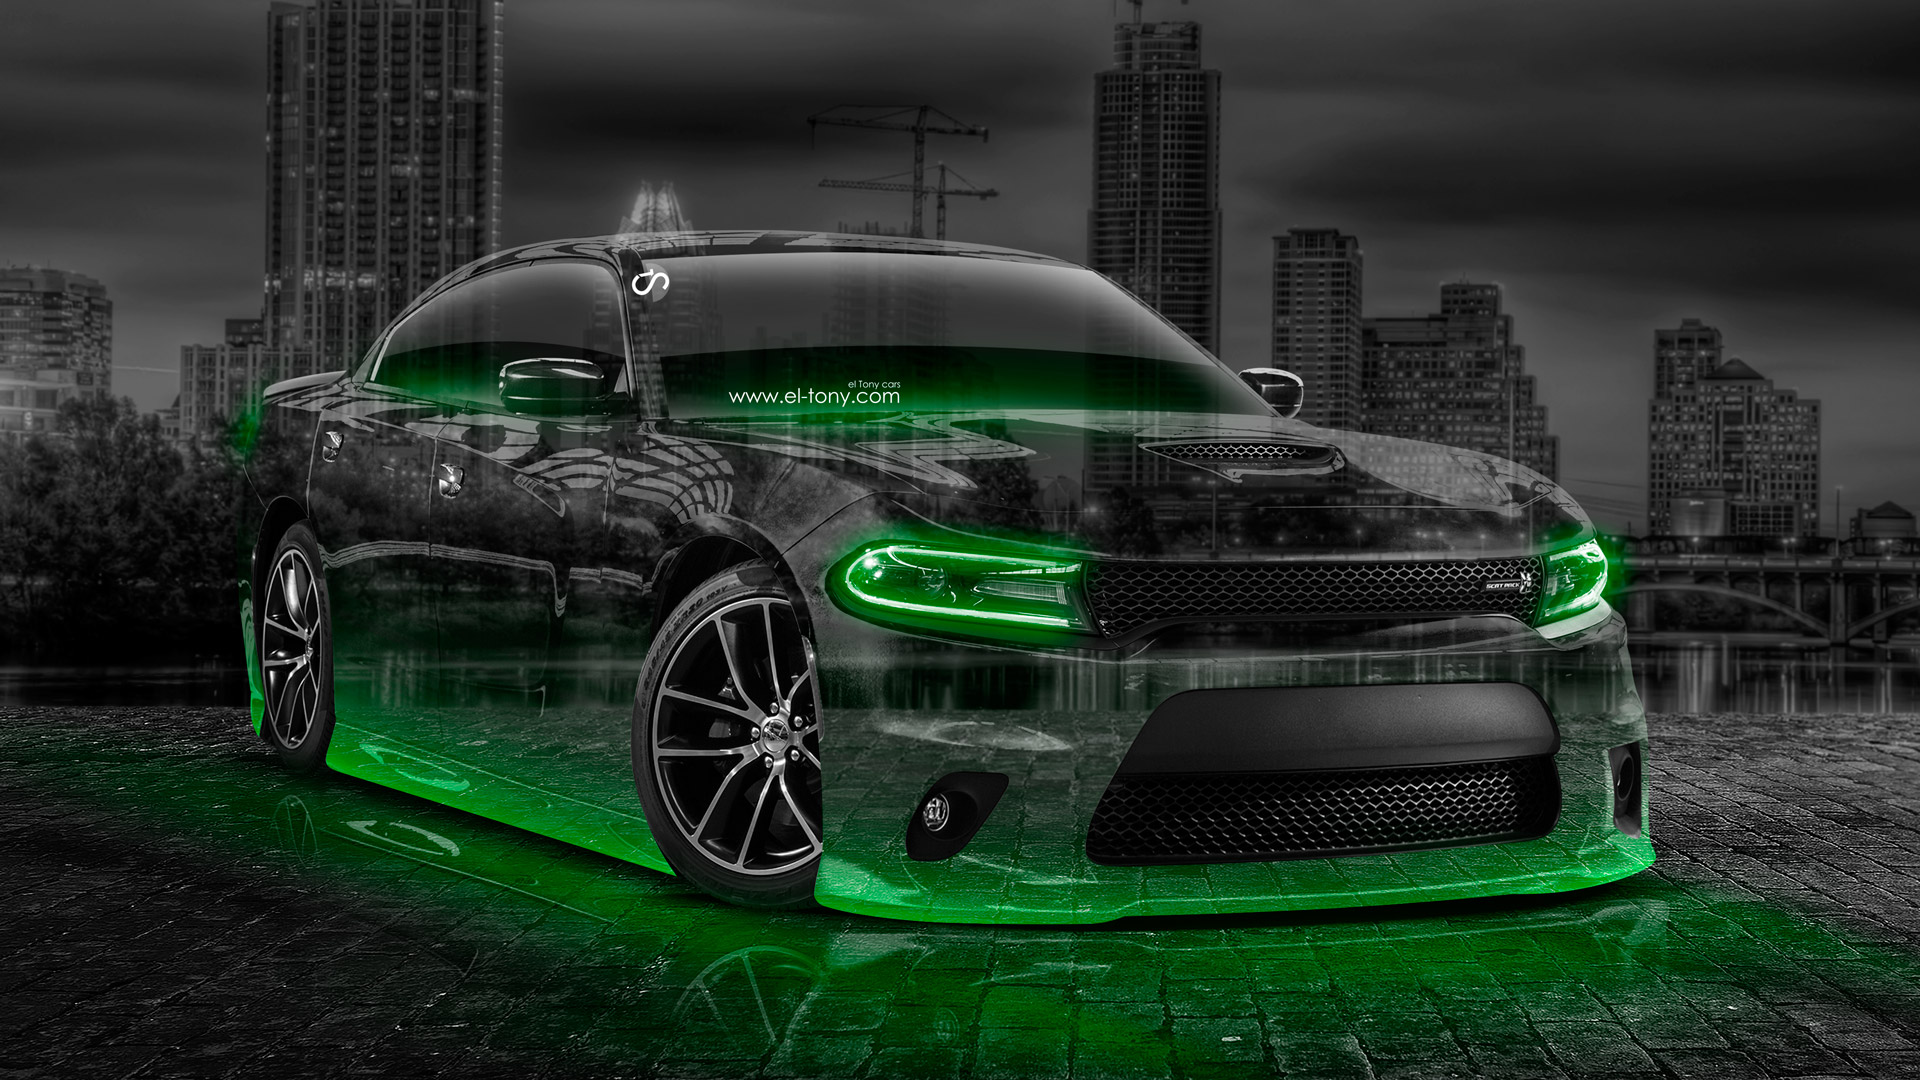 Car Wallpapers Nissan Gtr Dodge Charger Rt Muscle Crystal City Car 2015 El Tony